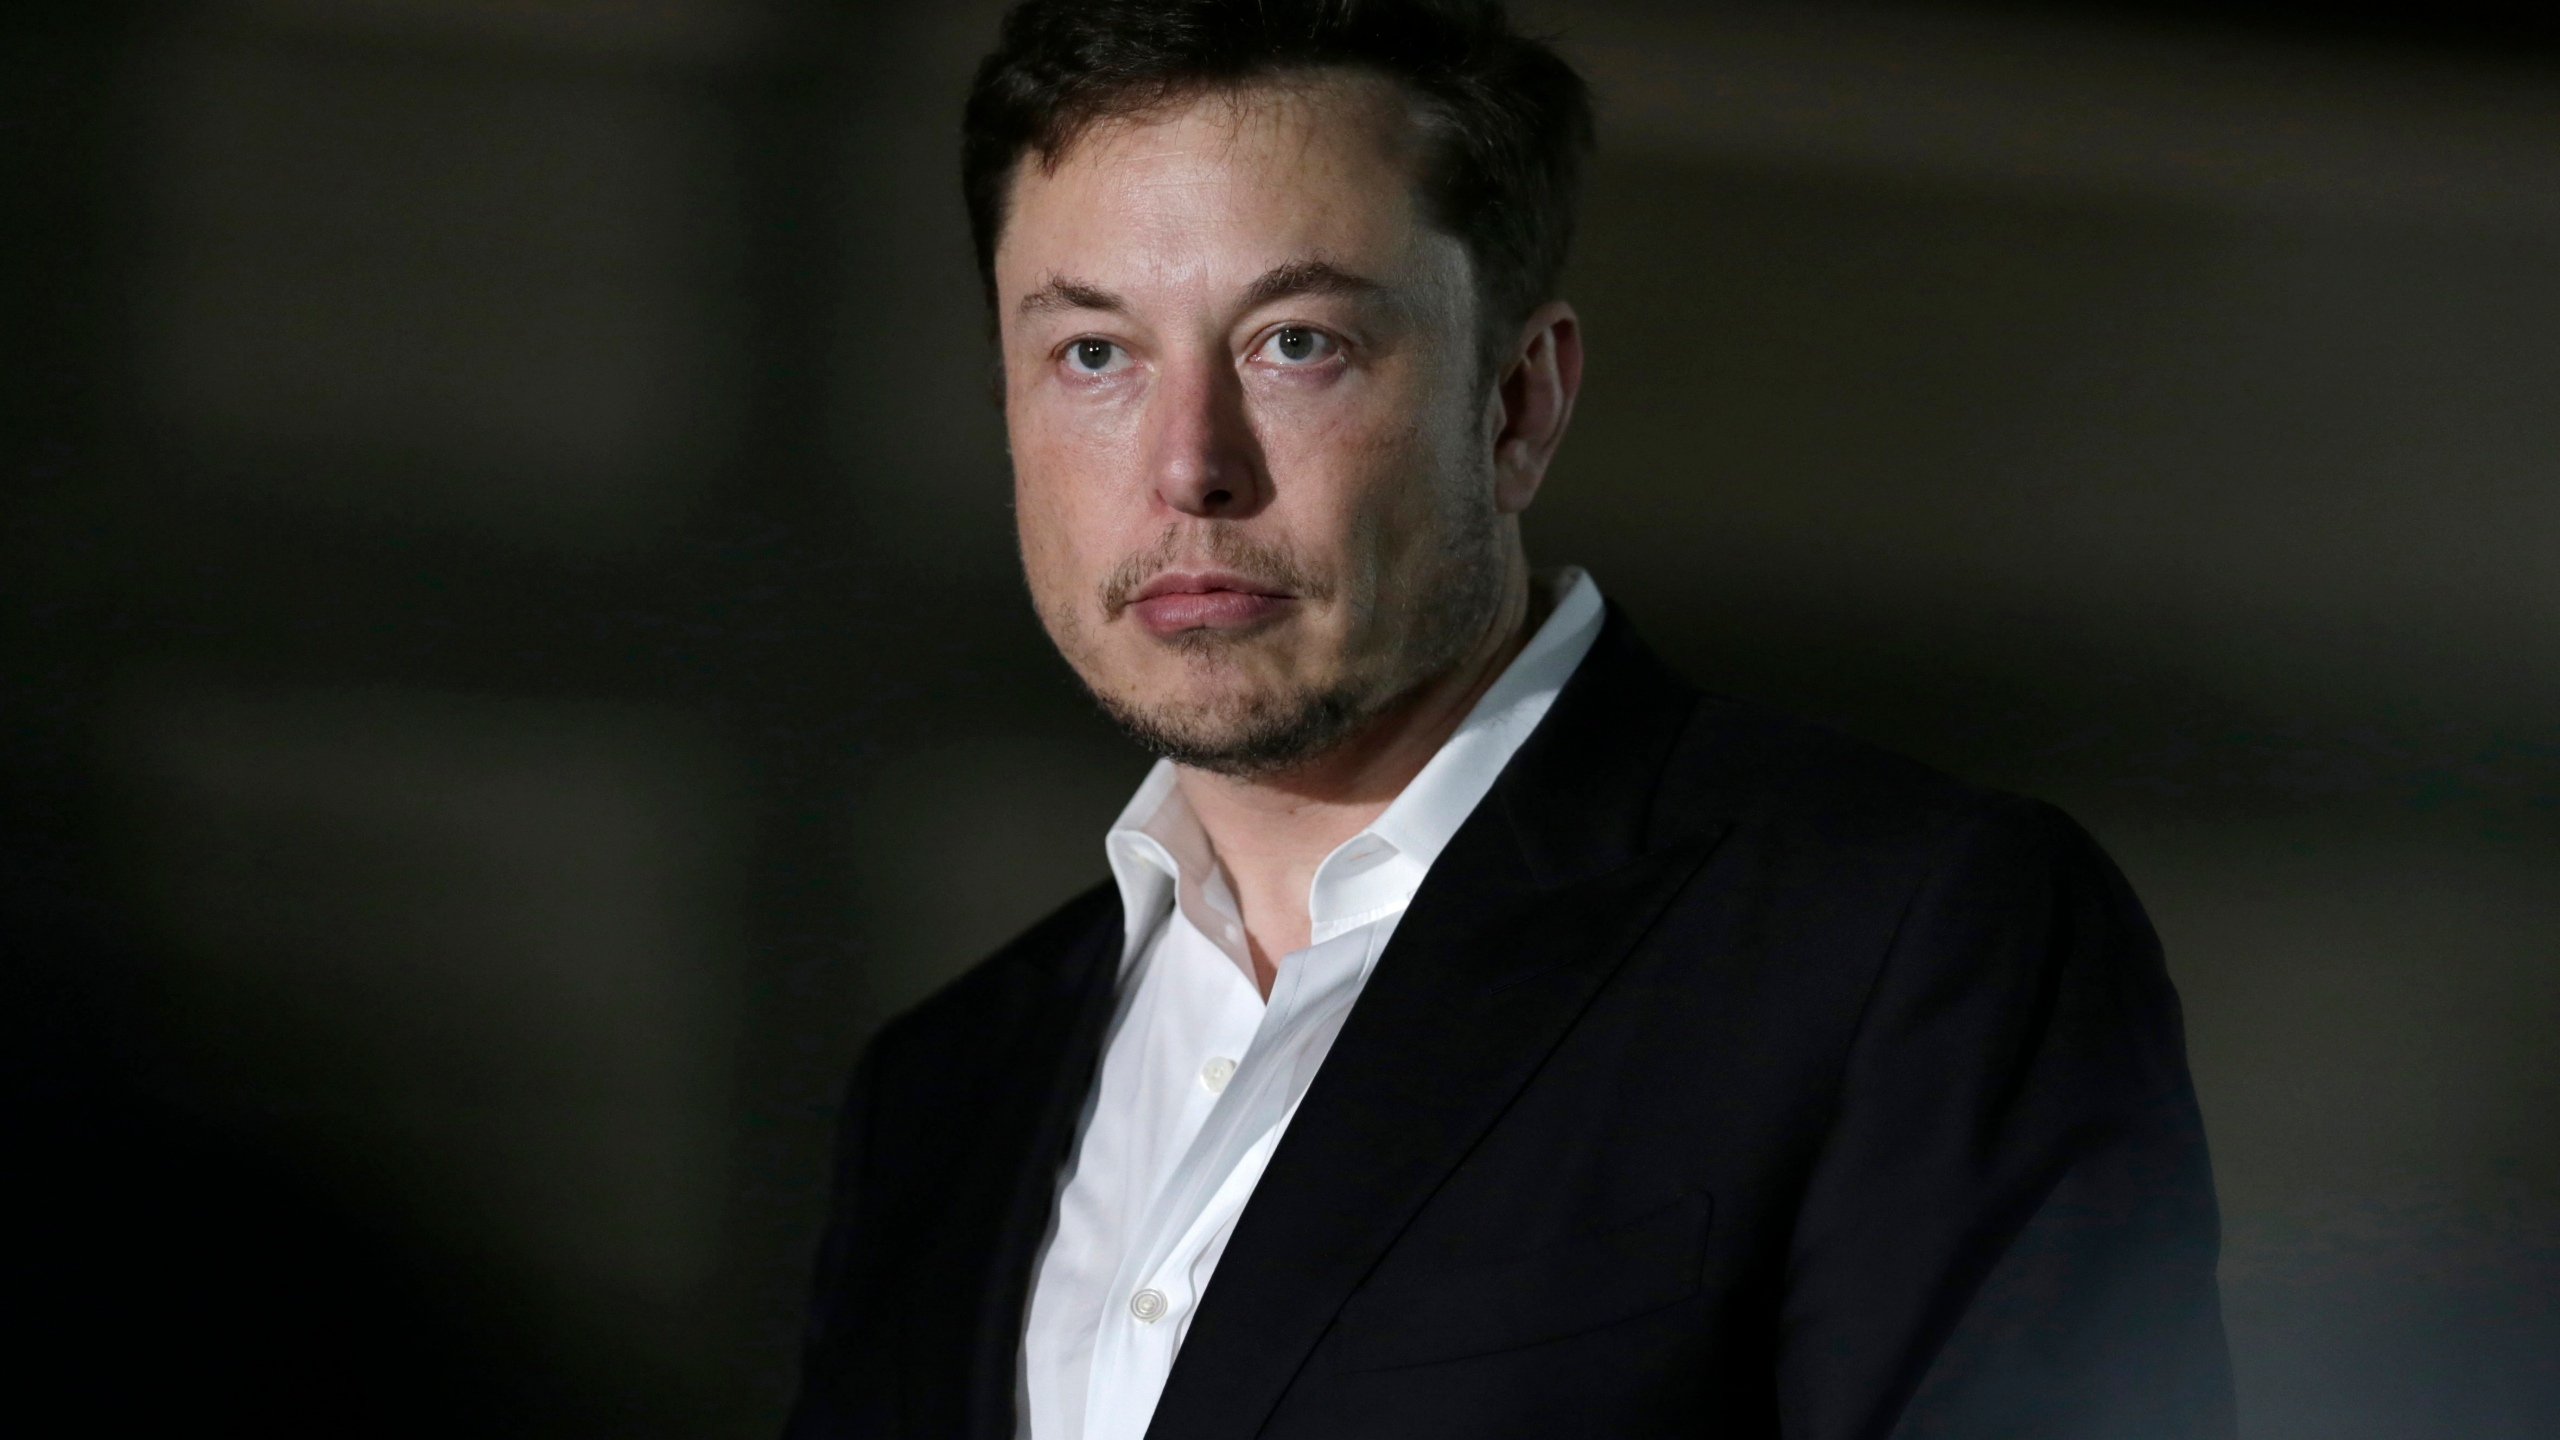 Elon_Musk_Lawsuit_96077-159532.jpg63732422